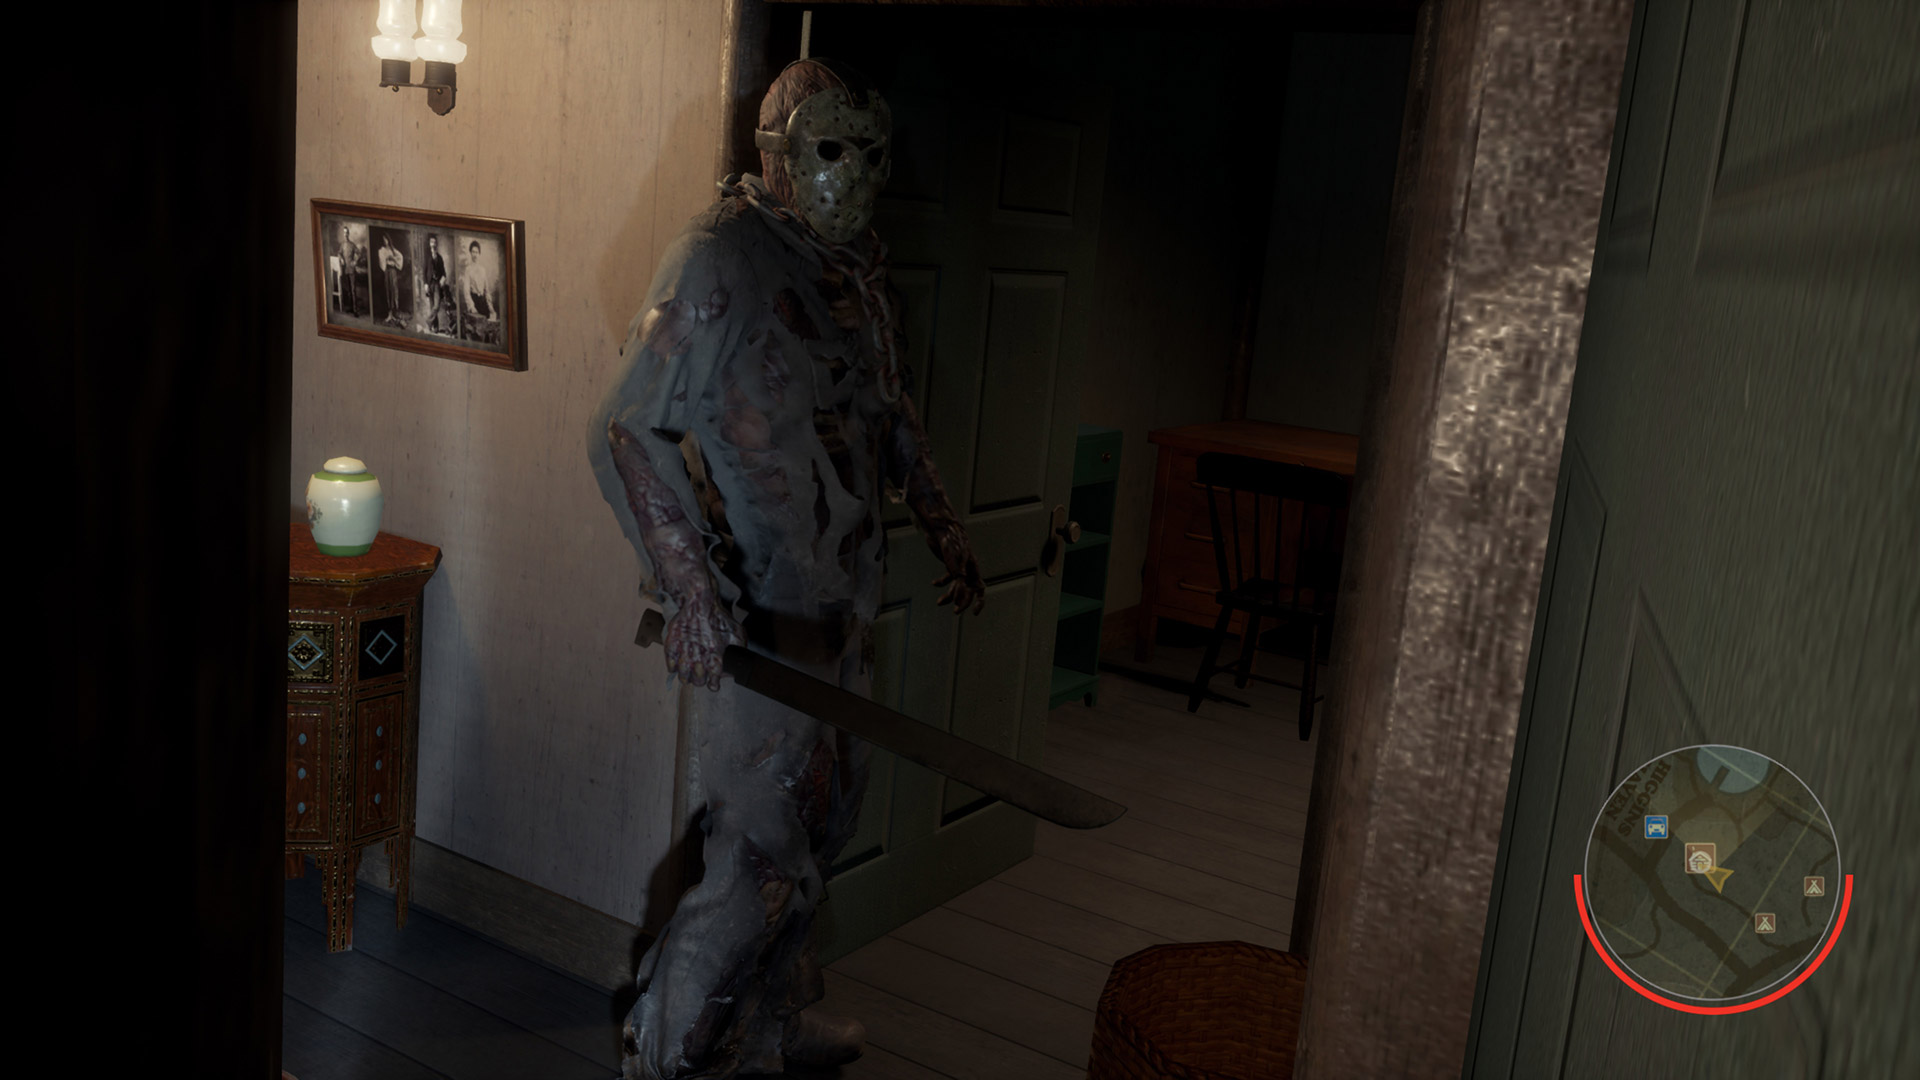 Games with Gold is celebrating Halloween with Friday the 13th screenshot